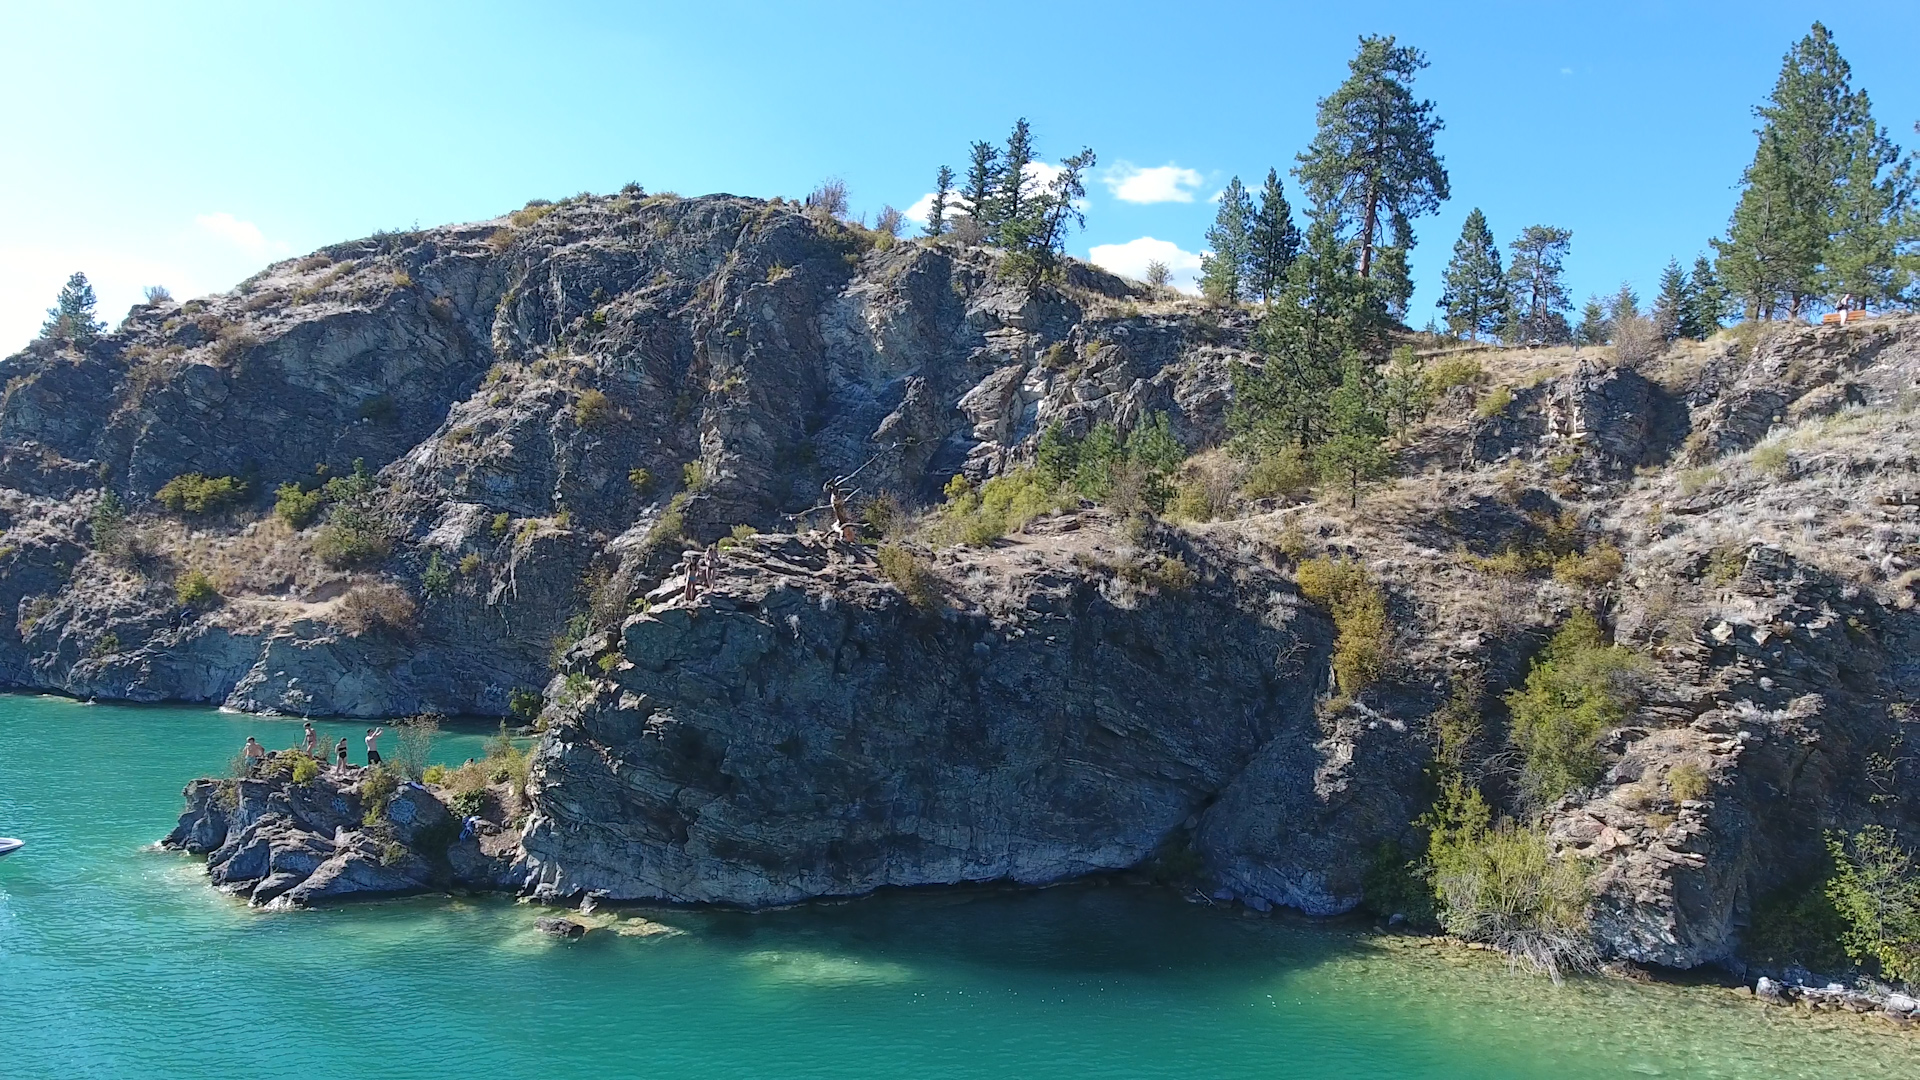 The Cliffs at Kalamalka Lake Provincial Park